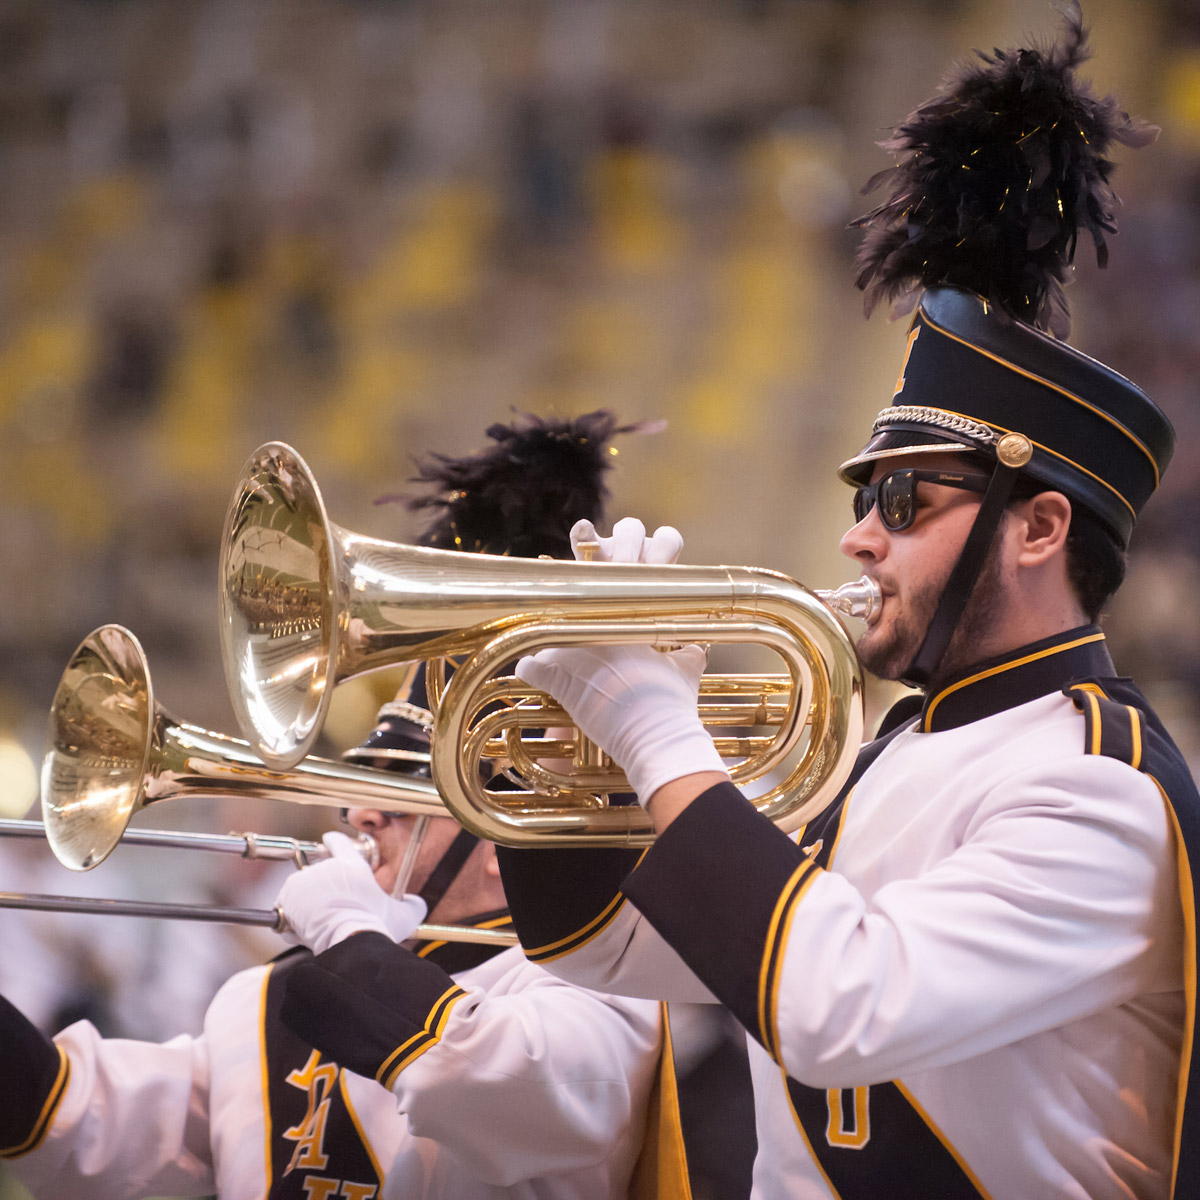 The Vandal Marching Band performs before a crowd in the Kibbie Dome.